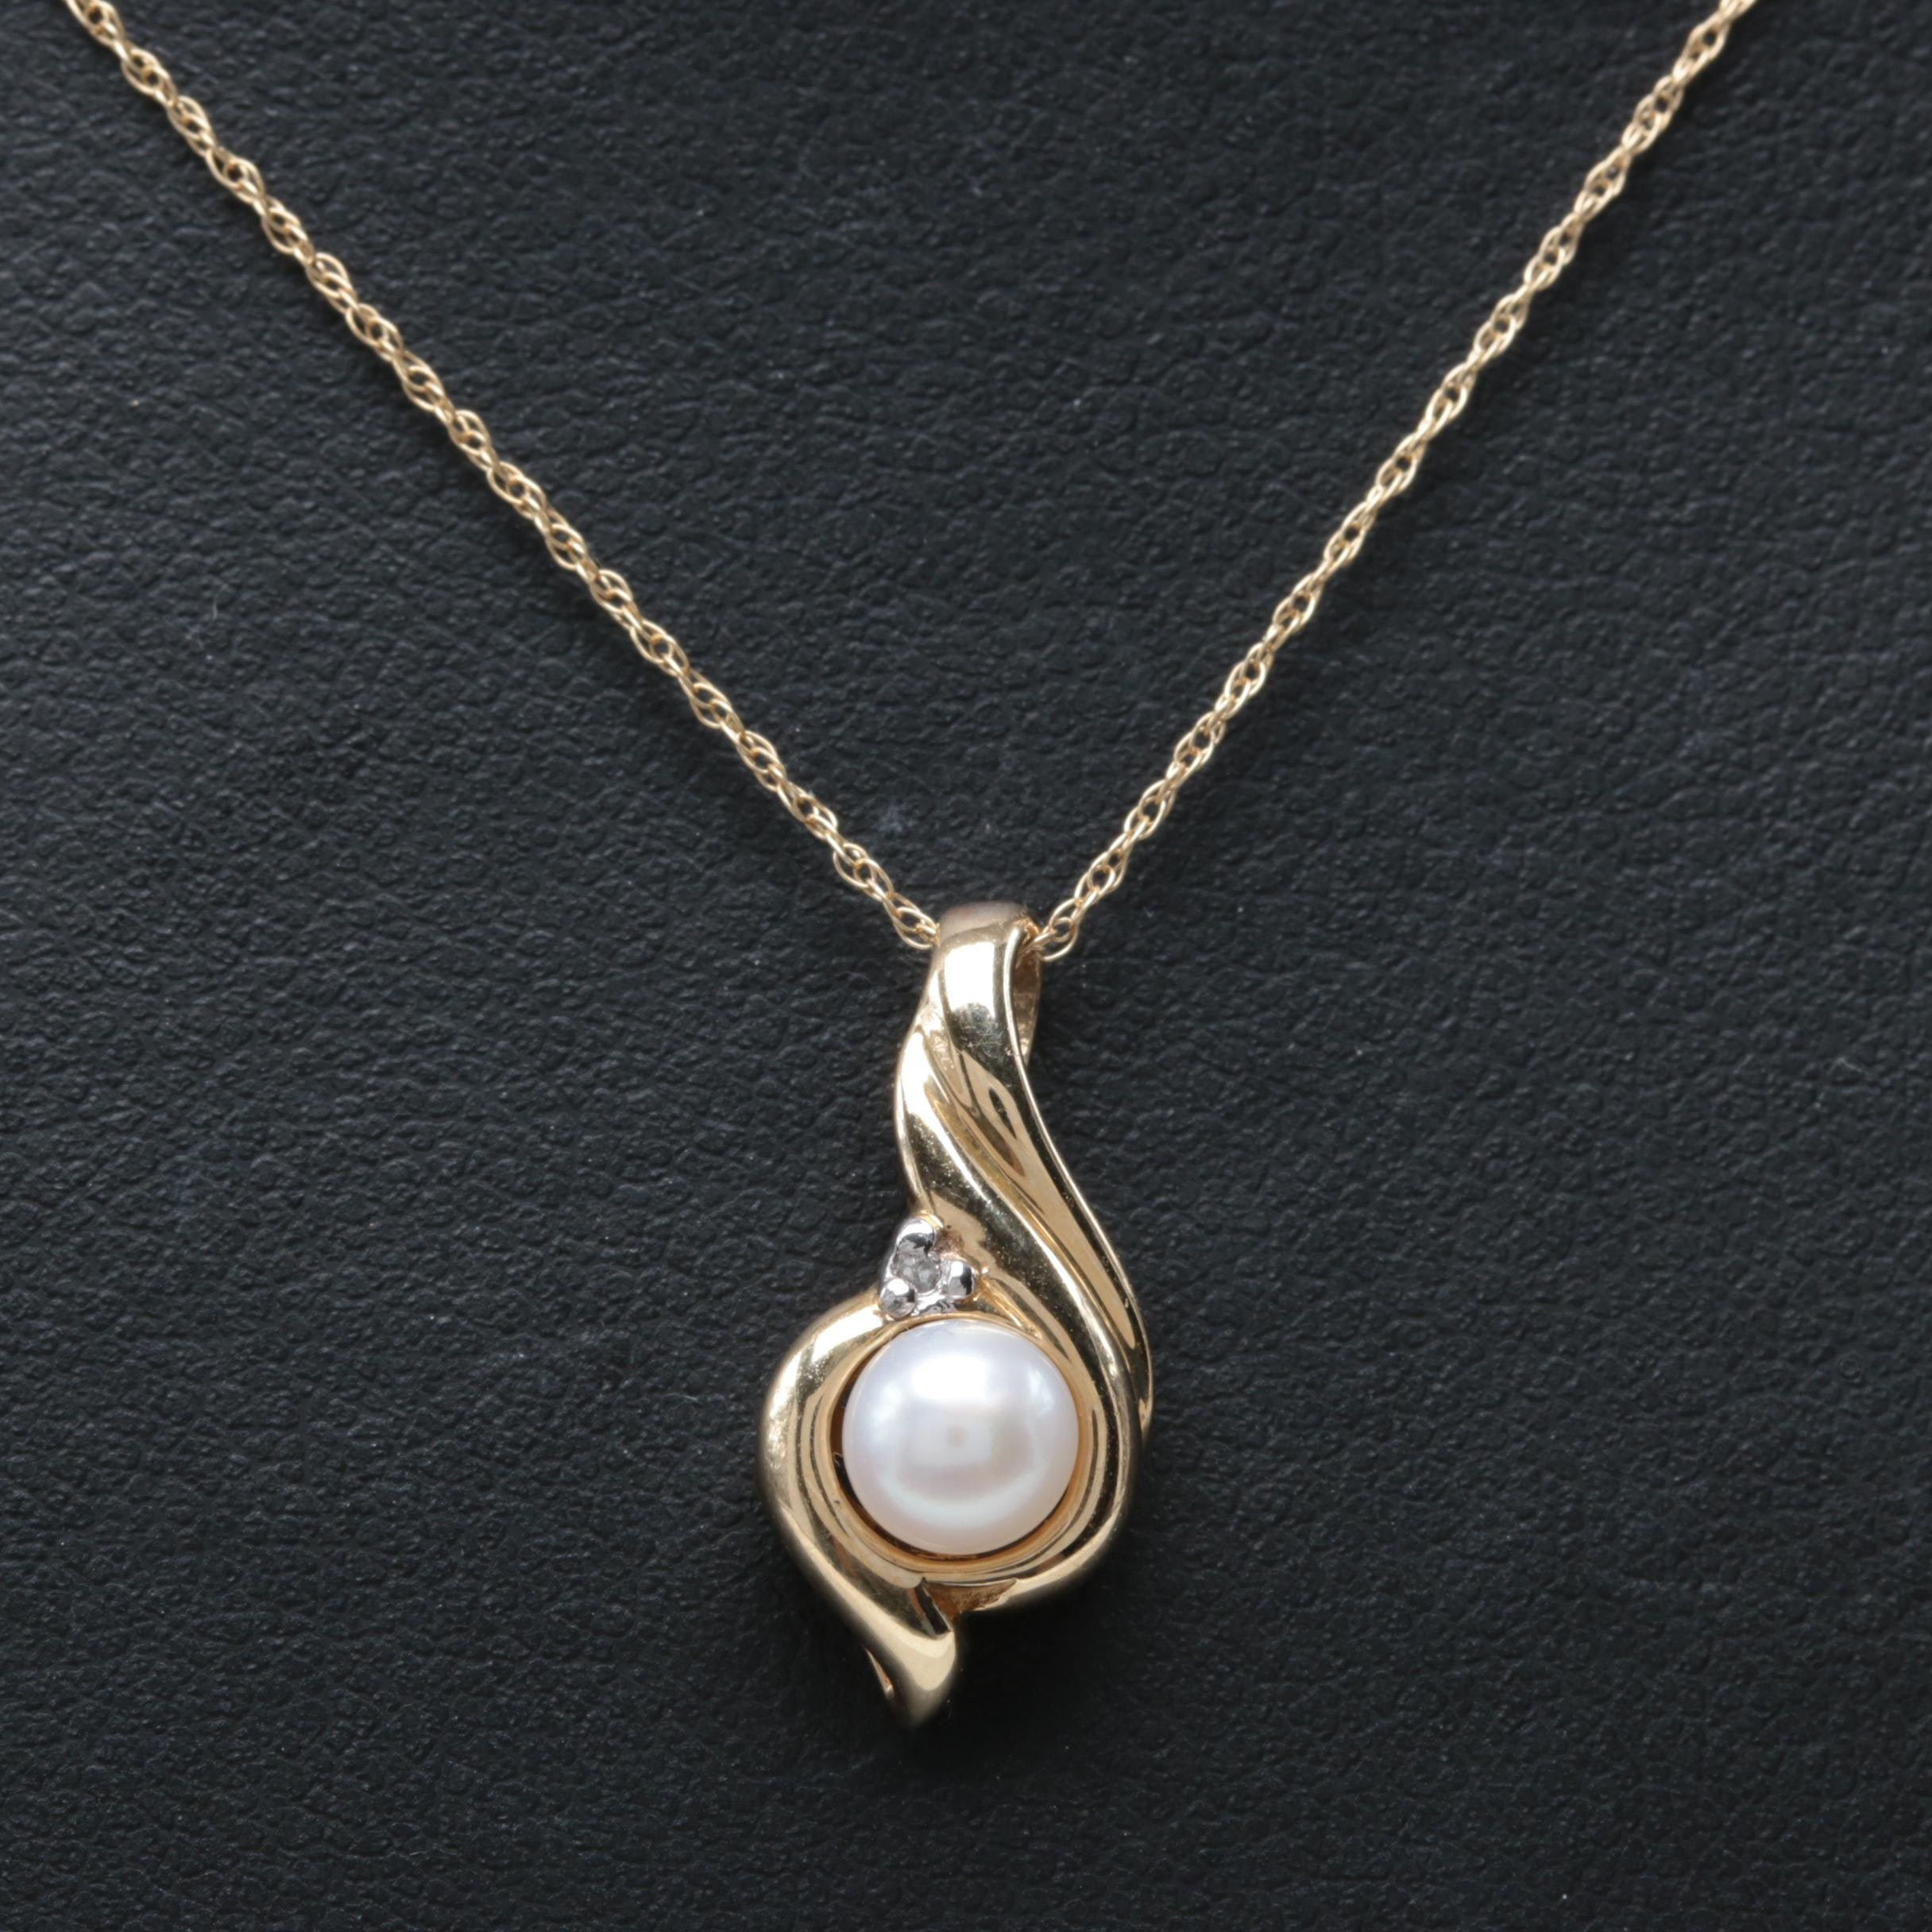 10K Yellow Gold Cultured Pearl and Diamond Pendant Necklace